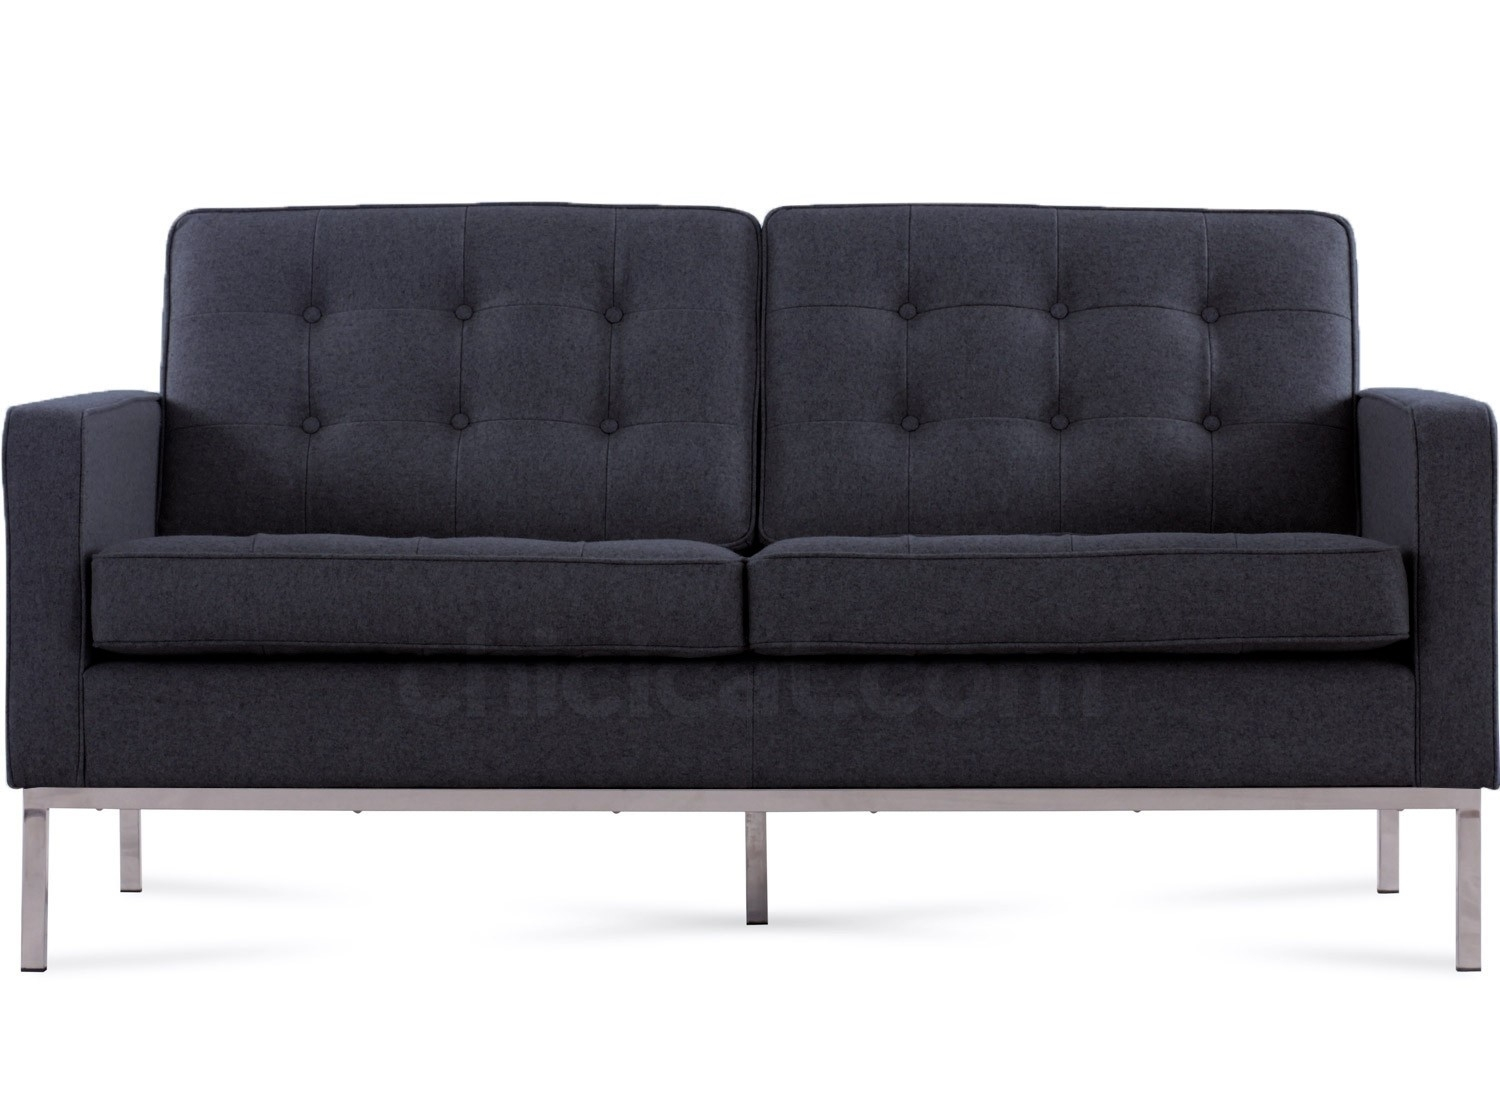 Replica Florence Knoll 2+1 Sofa Range *Cashmere Ifurniture Within Florence Knoll Living Room Sofas (View 11 of 15)